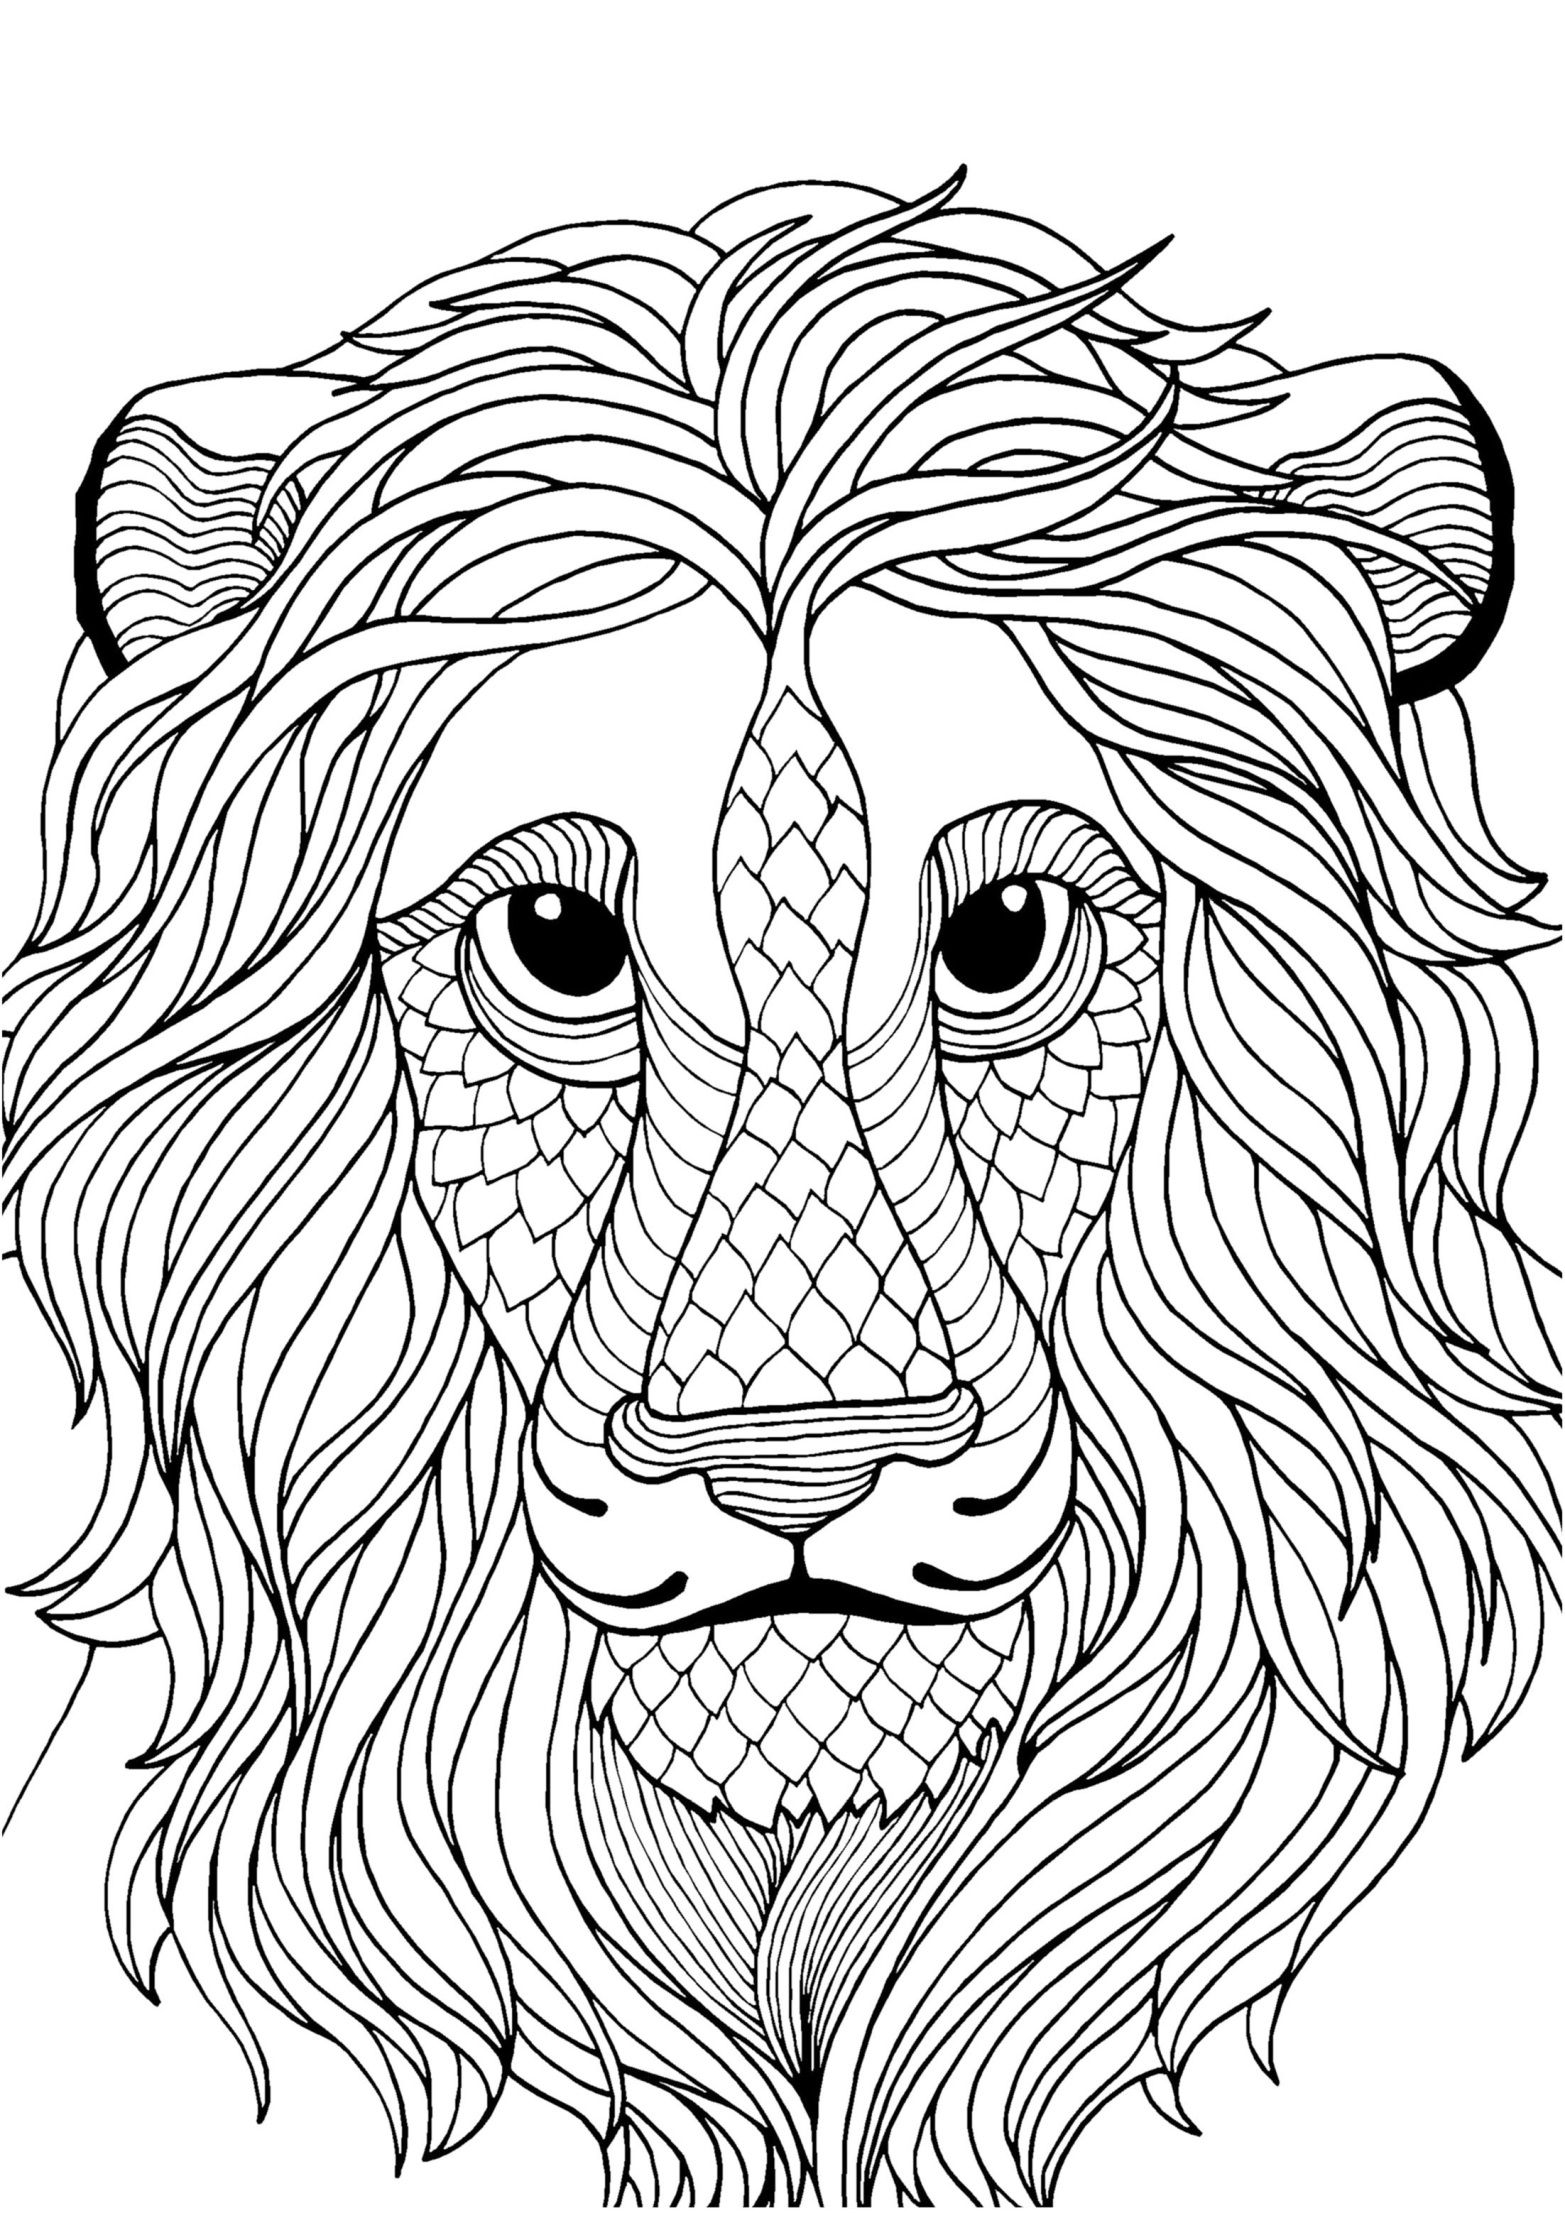 Lion adult colouring page Colouring In Sheets Art